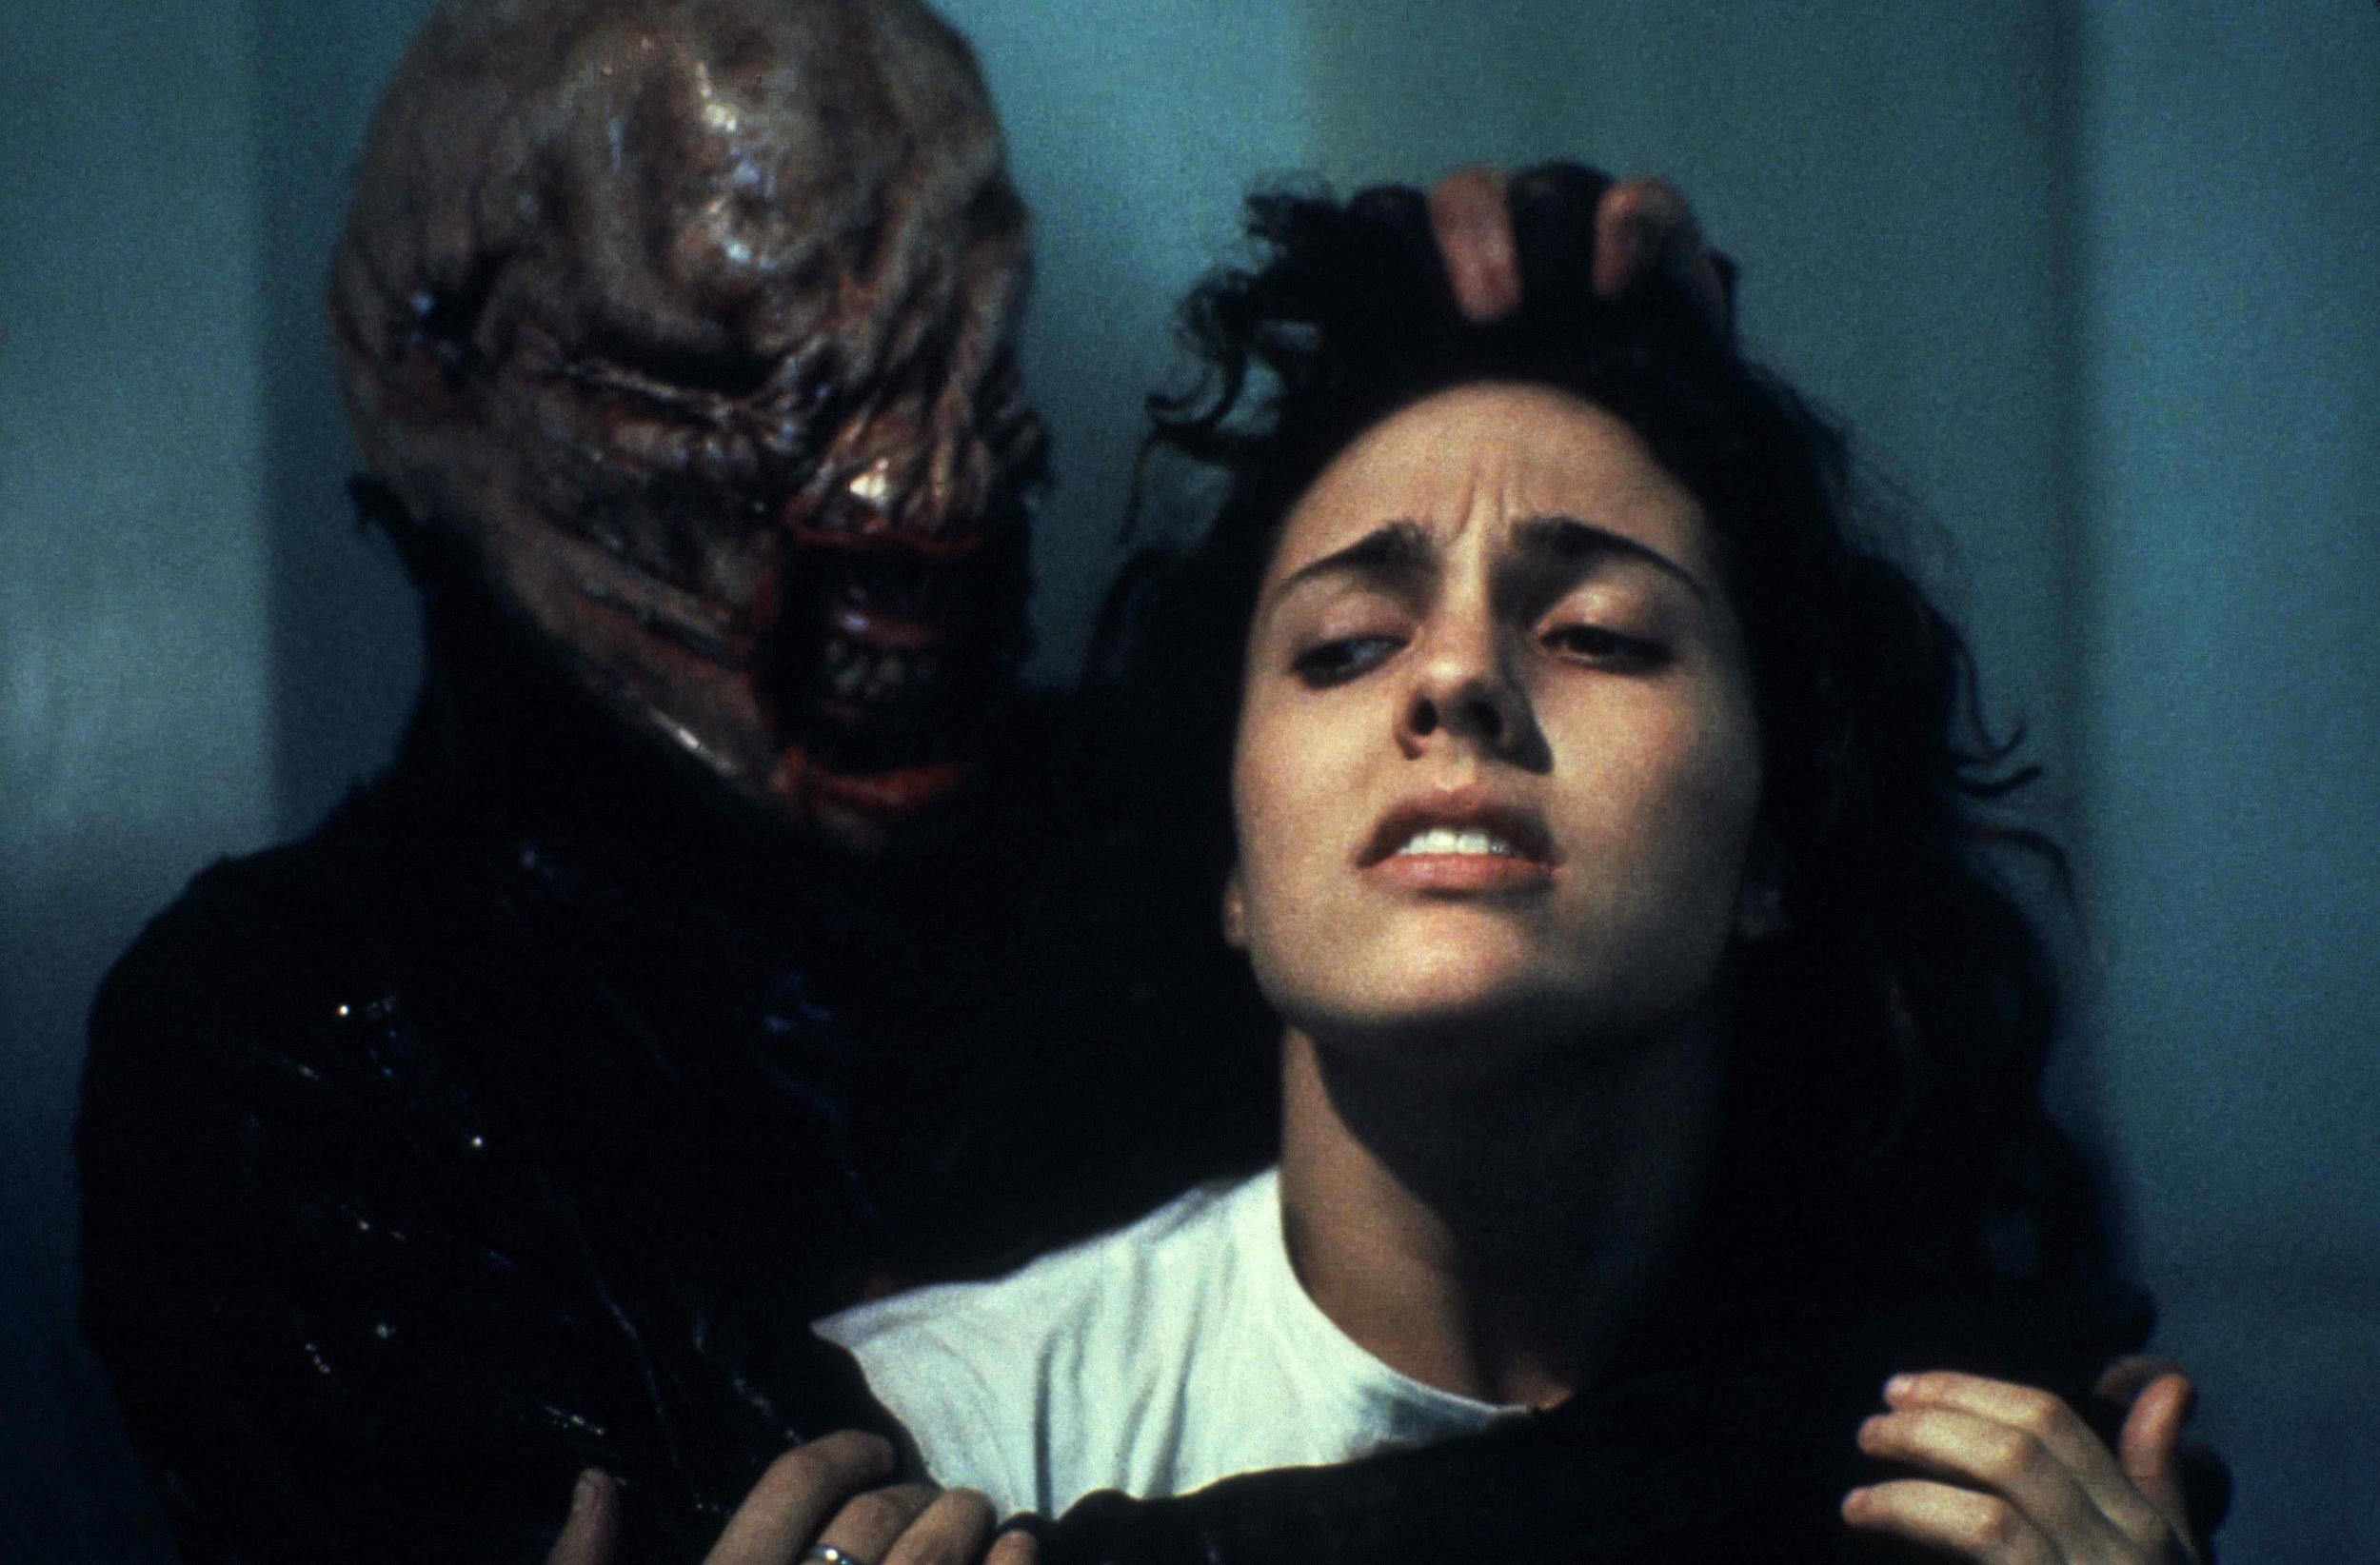 Hellraiser kirsty chatterer - Retro Gallery Archive (Full Size)